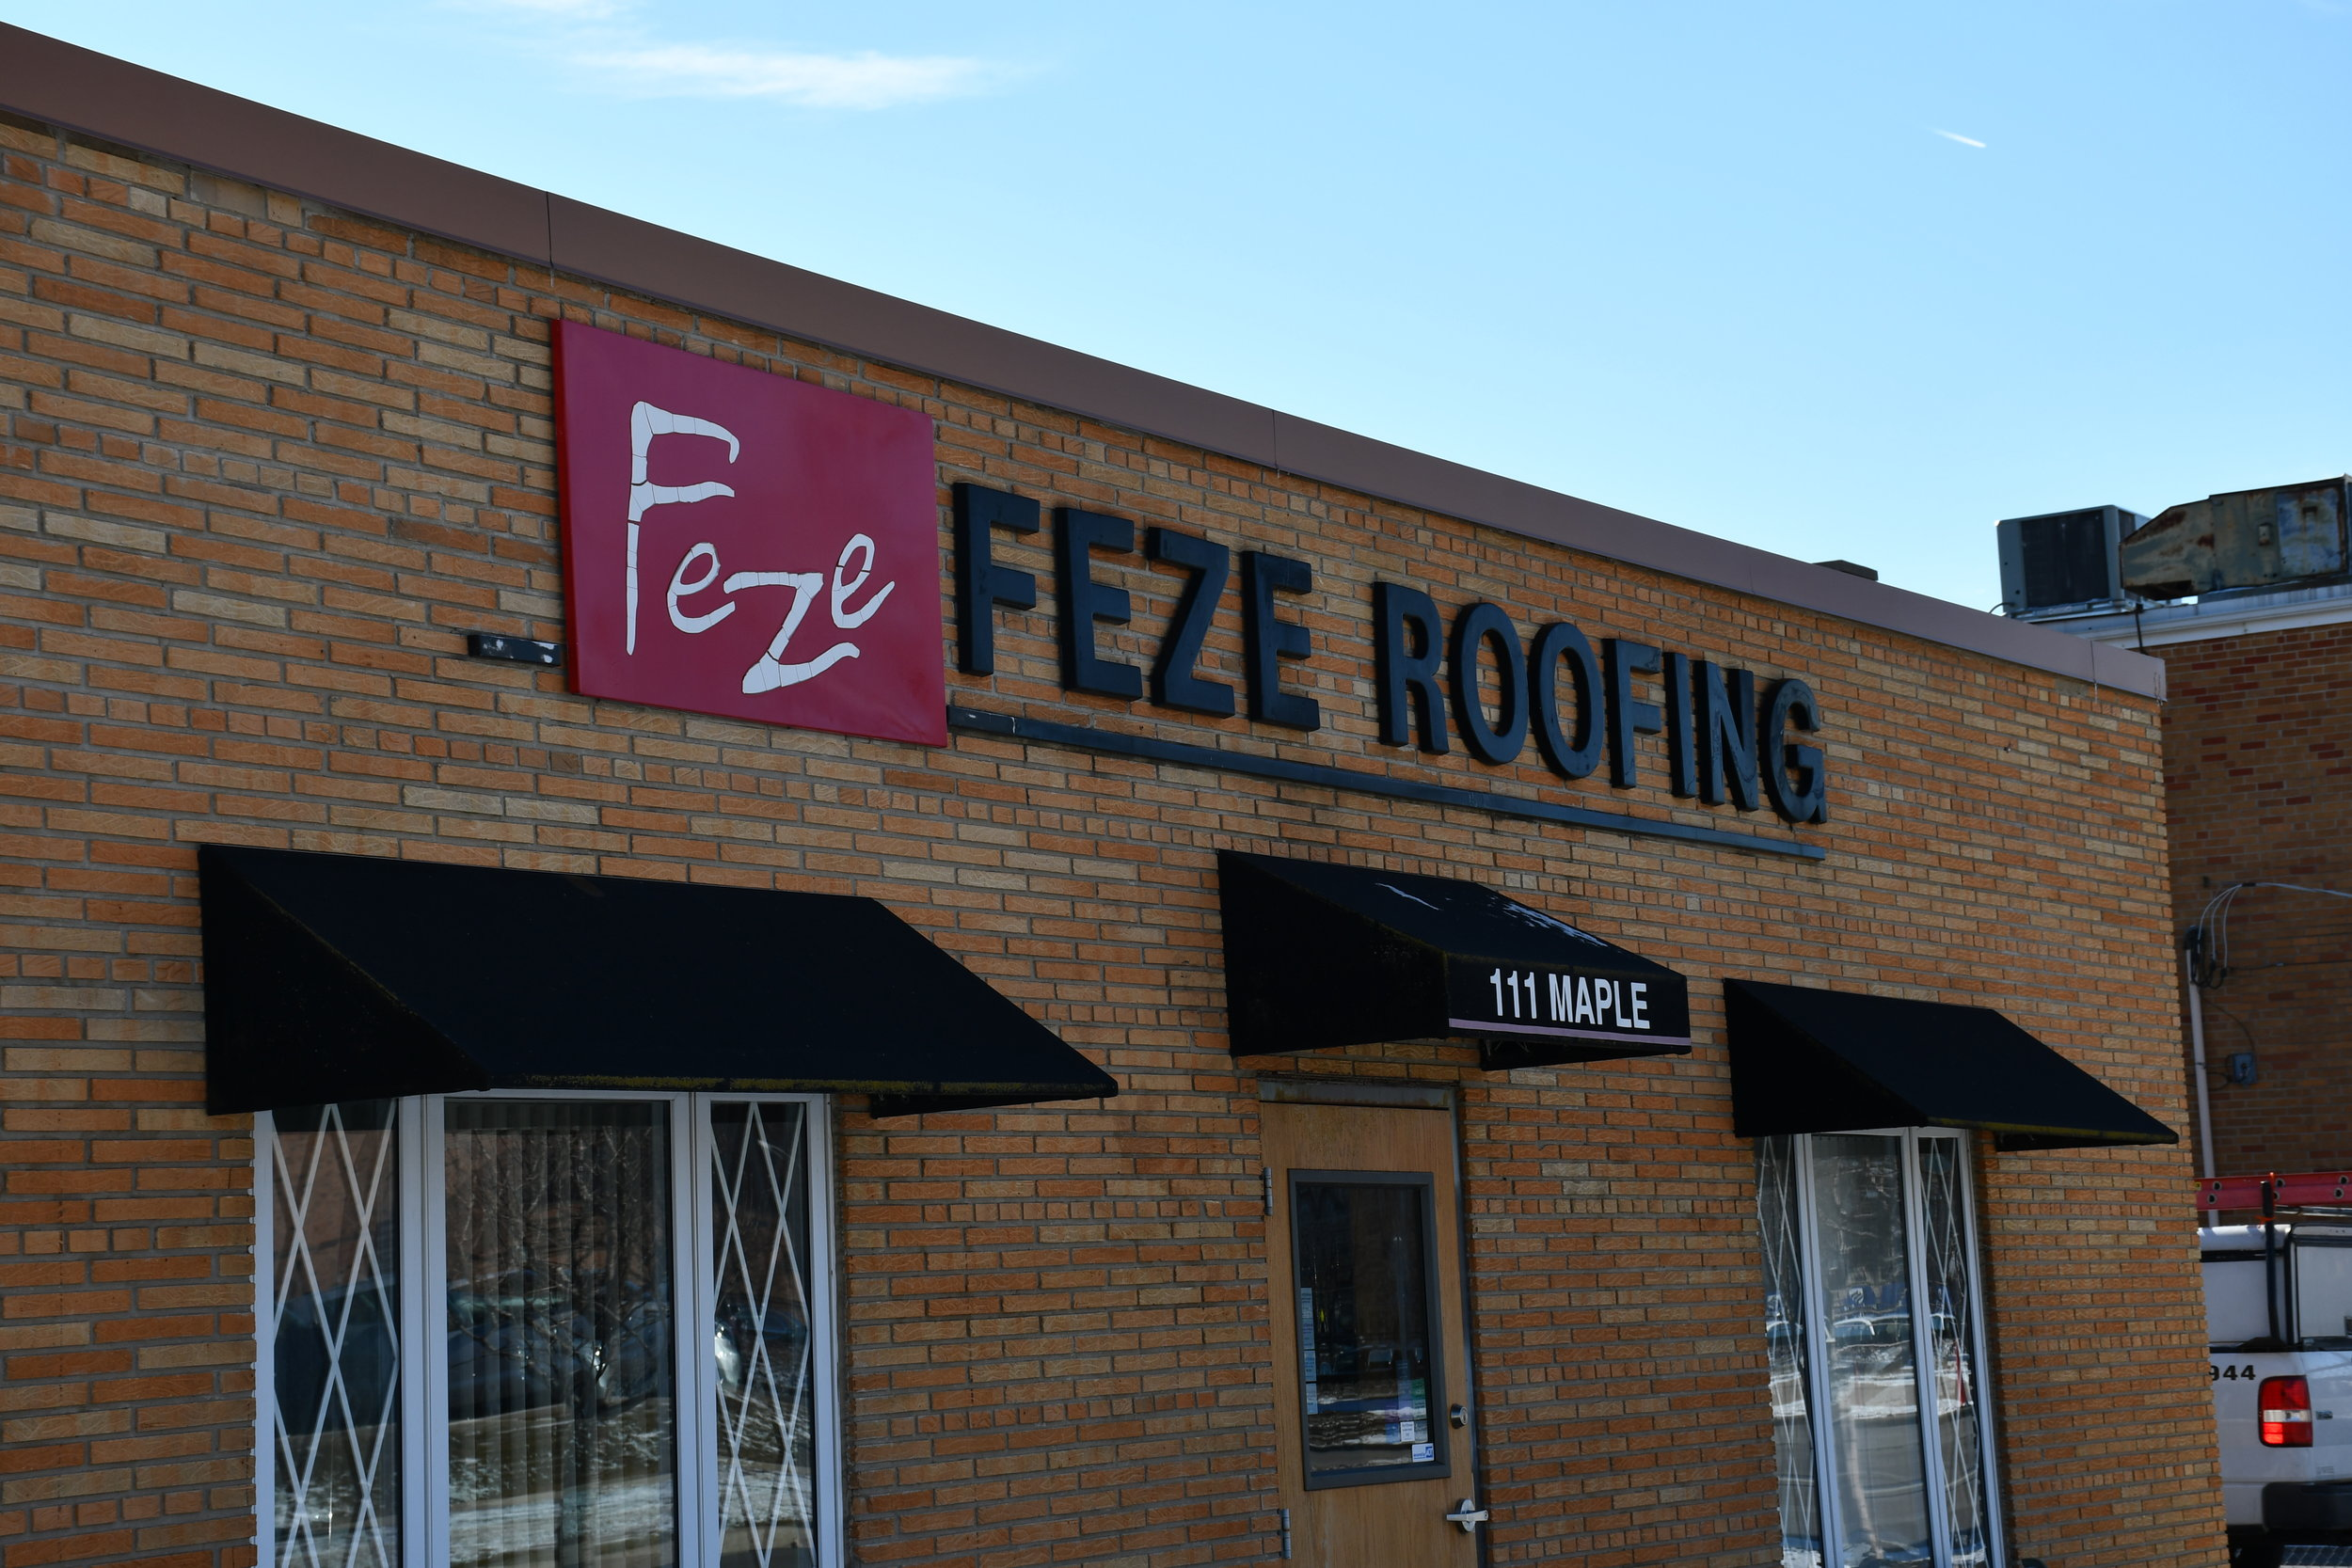 Step 2: Call Feze Roofing, Inc. © today to schedule your roof repair. -